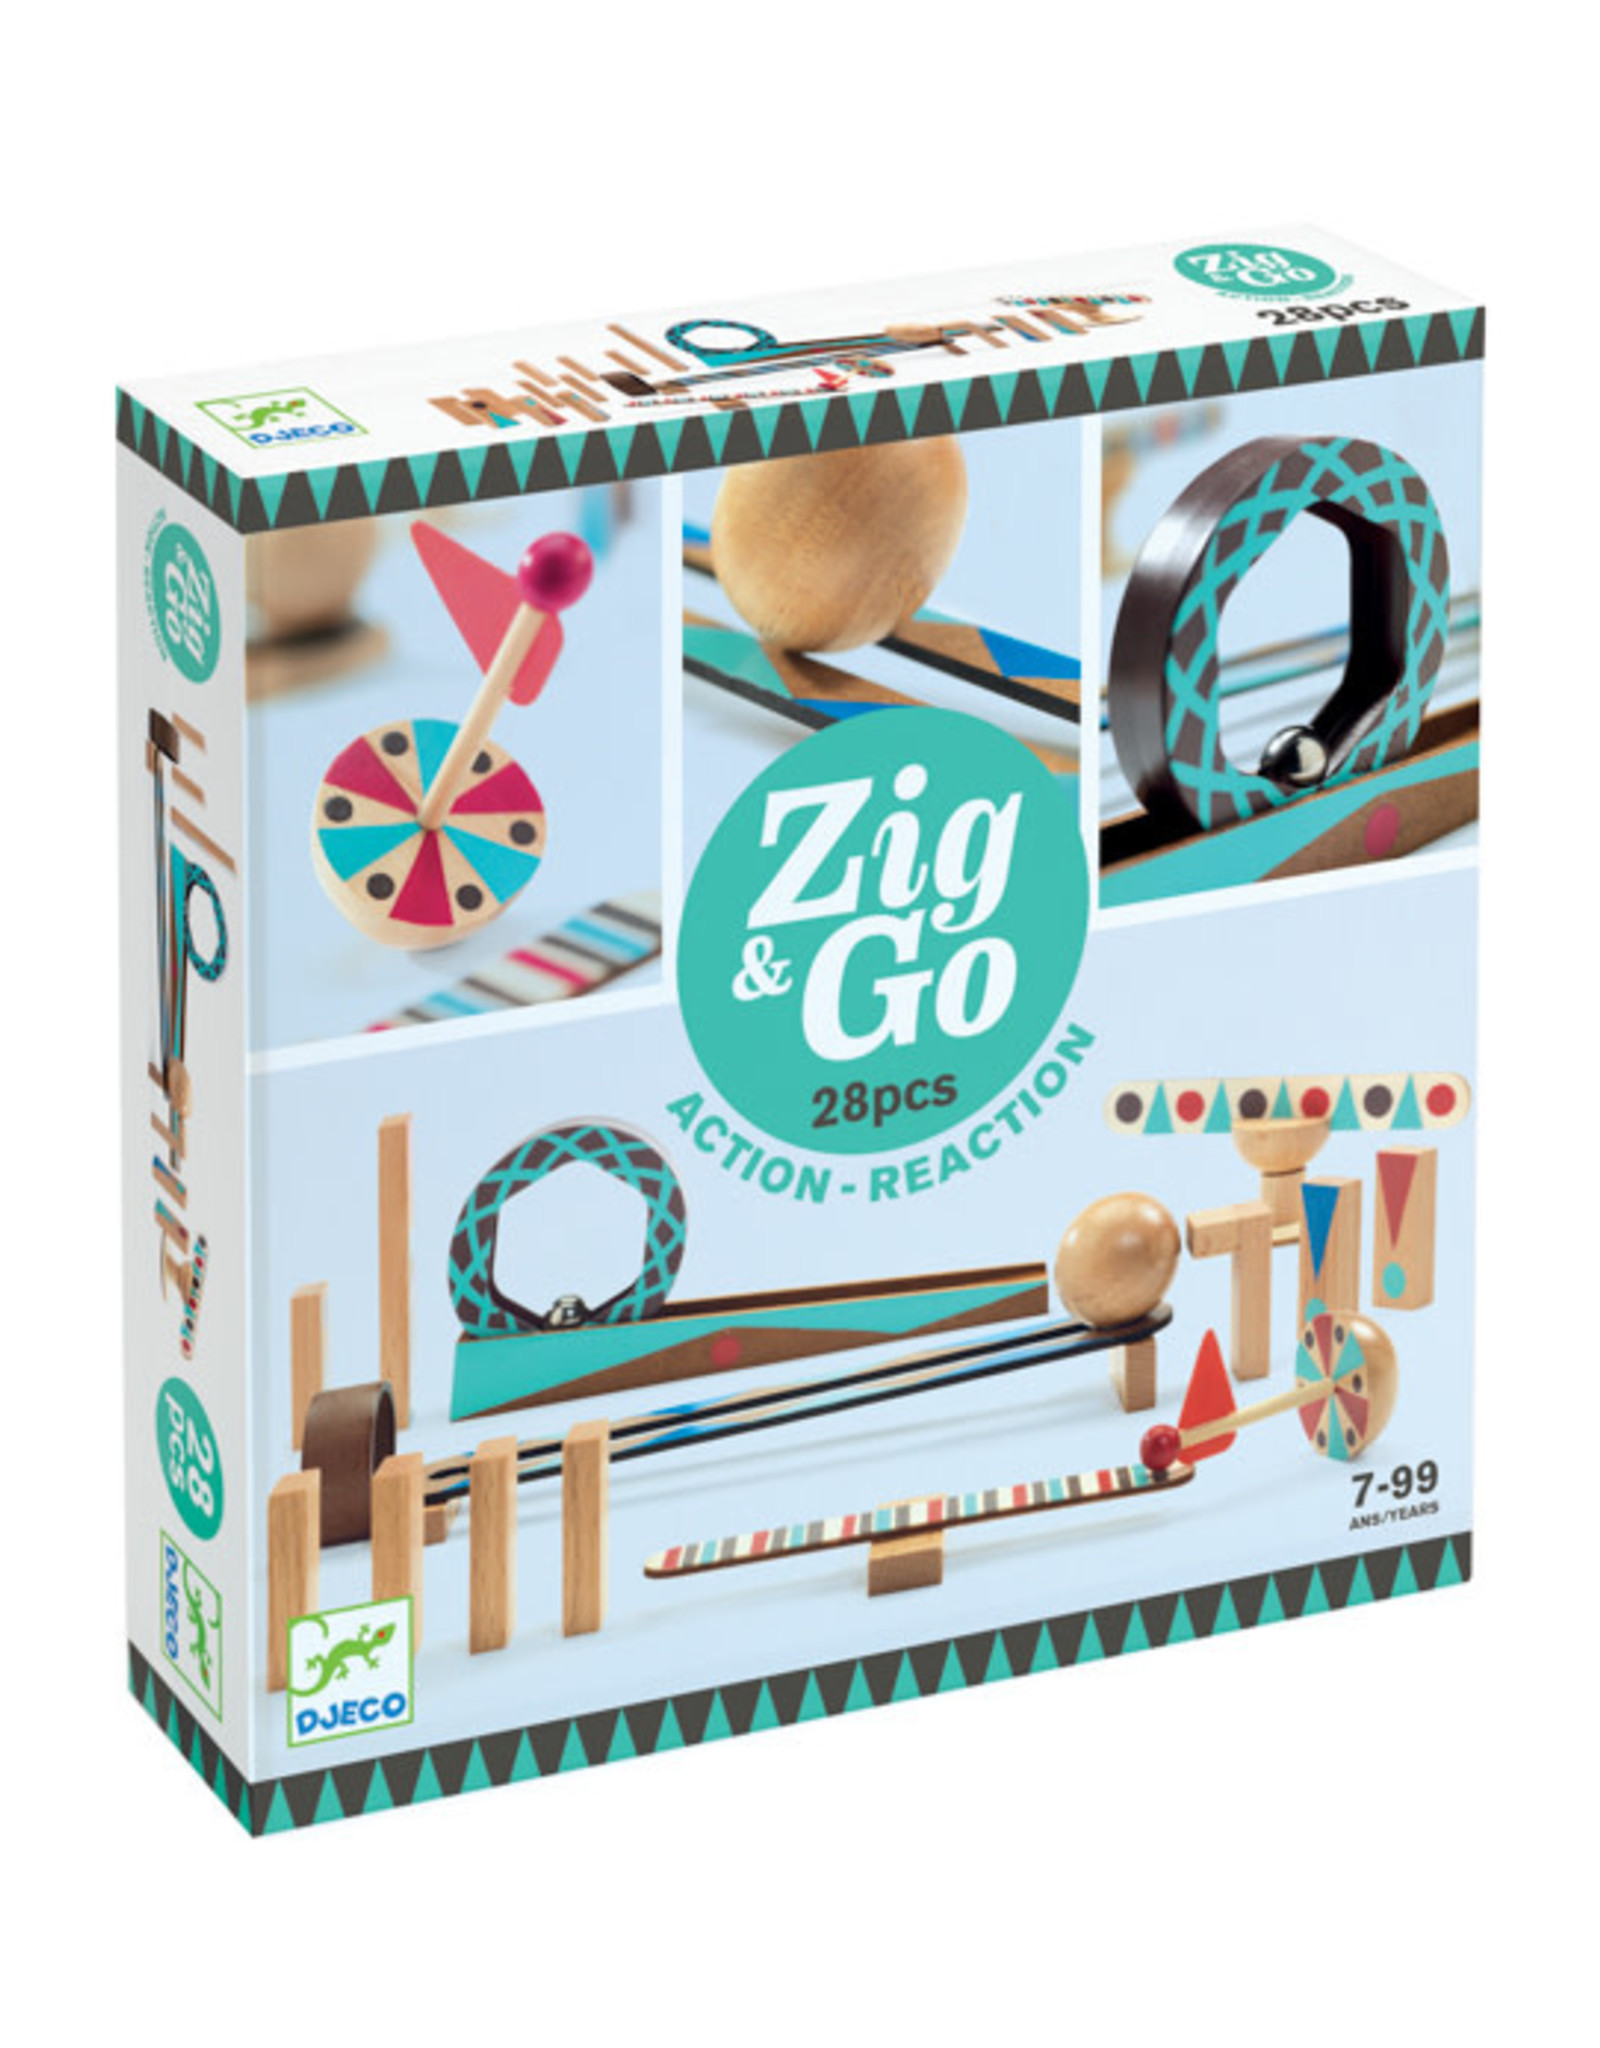 Djeco Djeco - Zig & Go Action Reaction 28pce